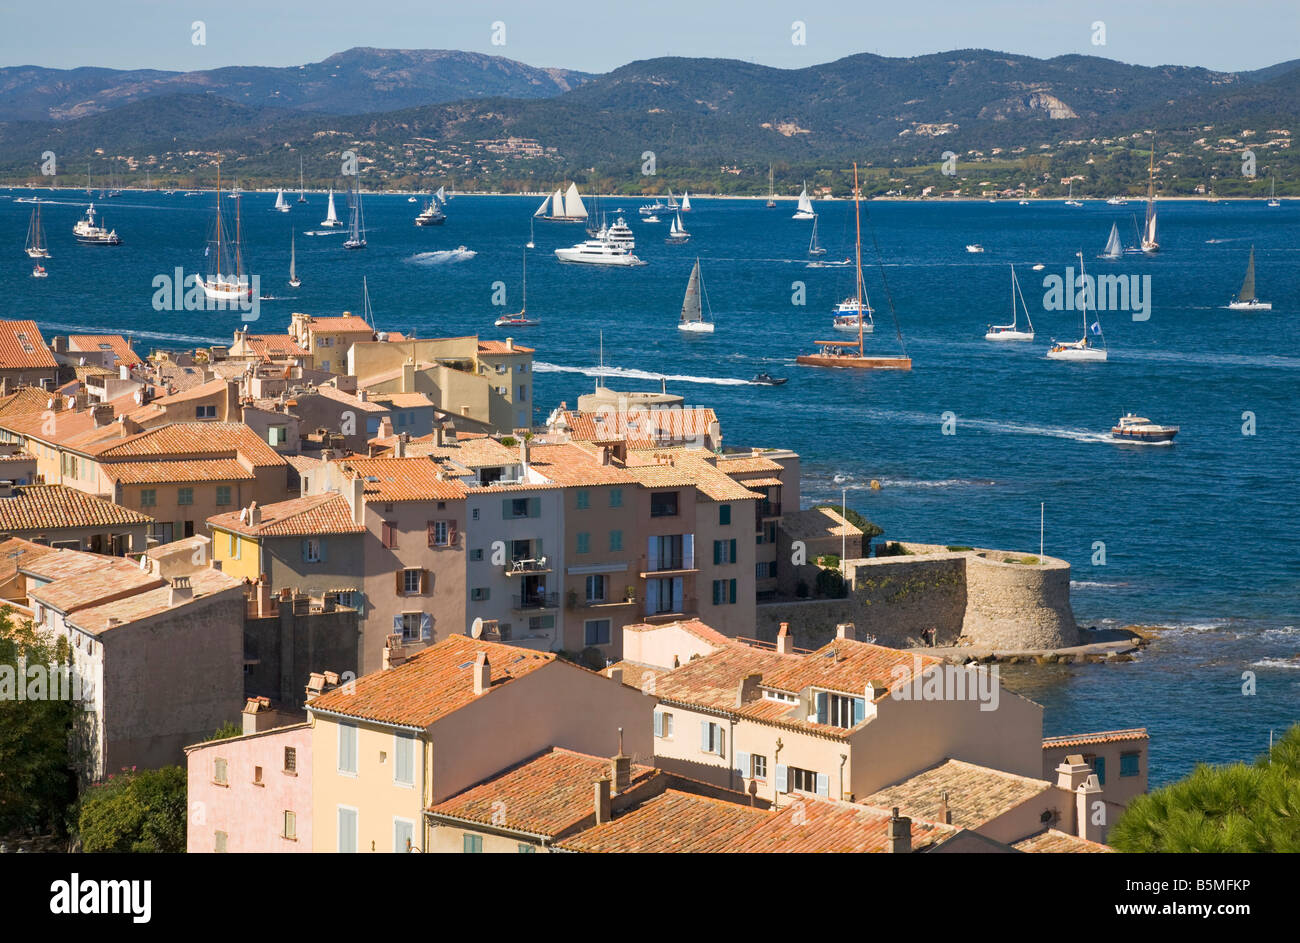 A view over the roofs of Saint Tropez / Cote d'Azur / Provence / Southern France down to the bay of Saint-Tropez Stock Photo